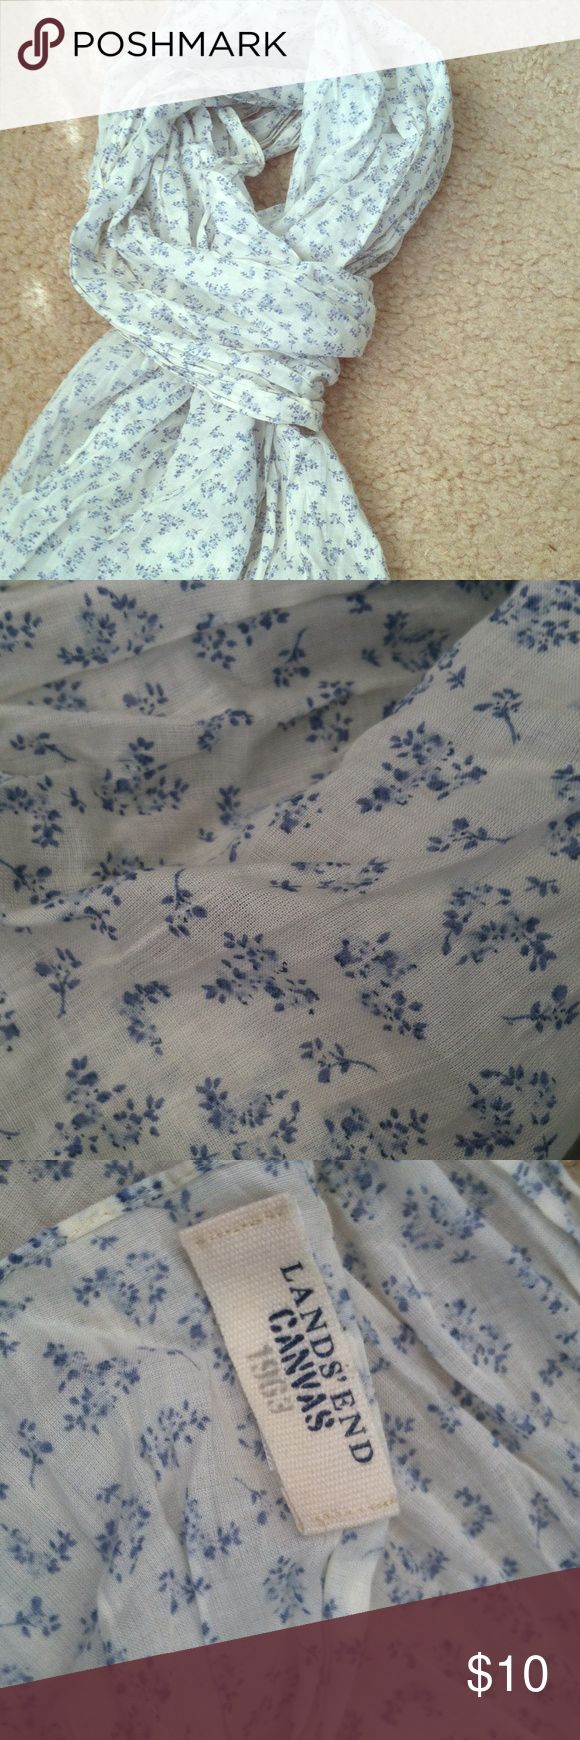 Lands End Canvas Floral Scarf Light weight crinkle fabric. Cream with blue floral print. Worn once. Moving sale, accepting offers! Lands' End Accessories Scarves & Wraps